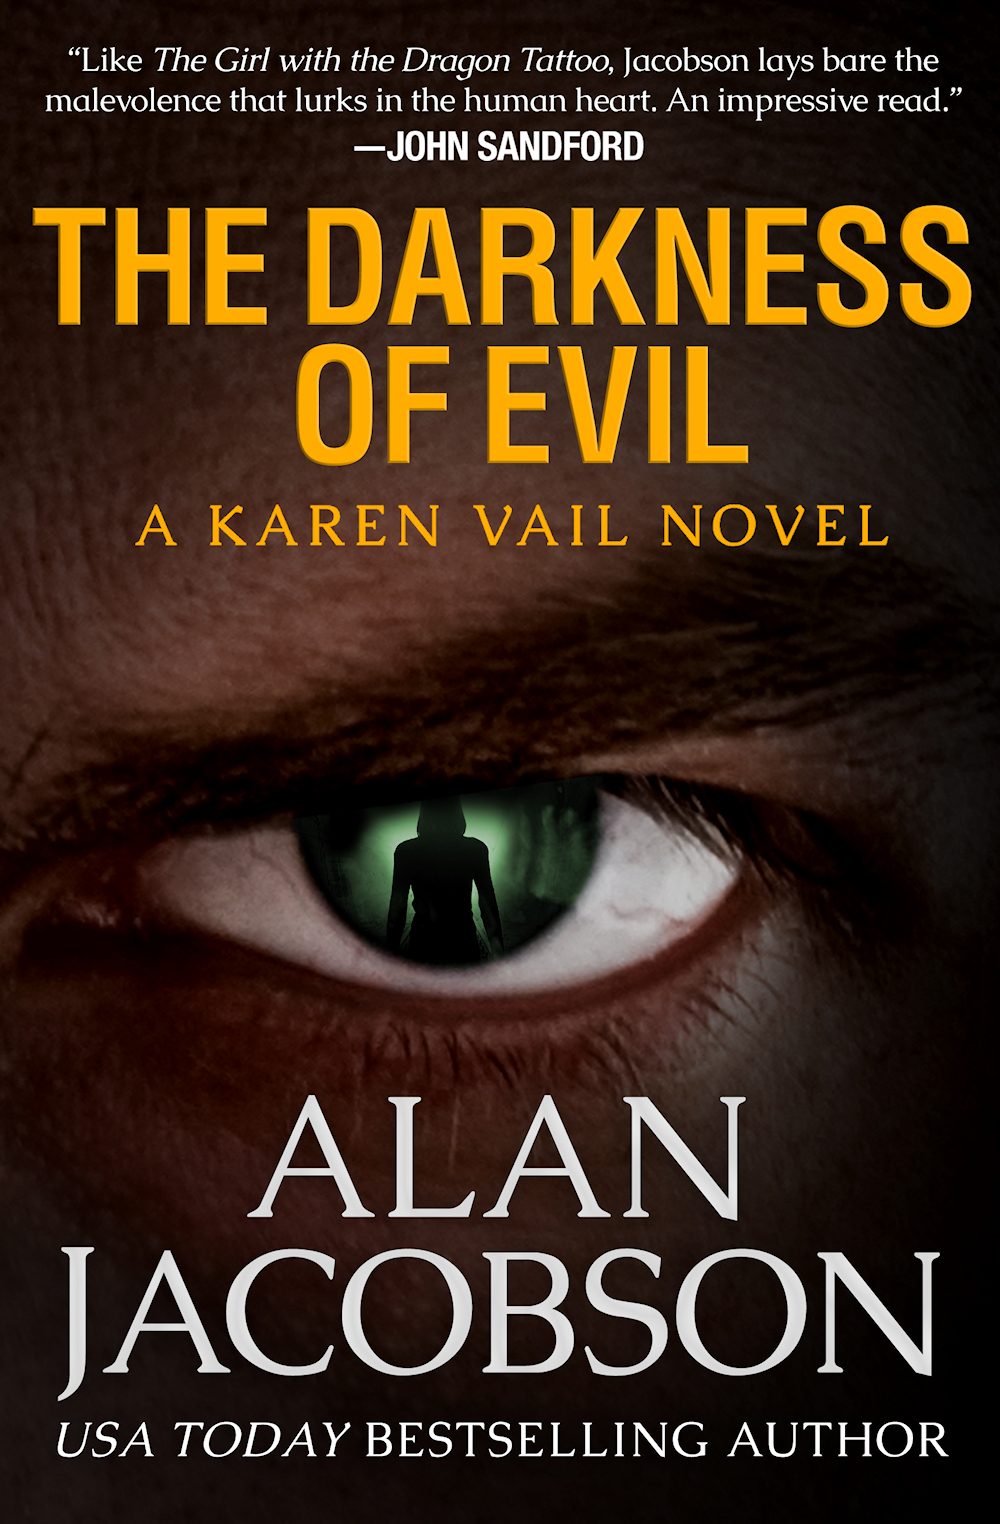 The Darkness of Evil excerpt (Karen Vail #7)